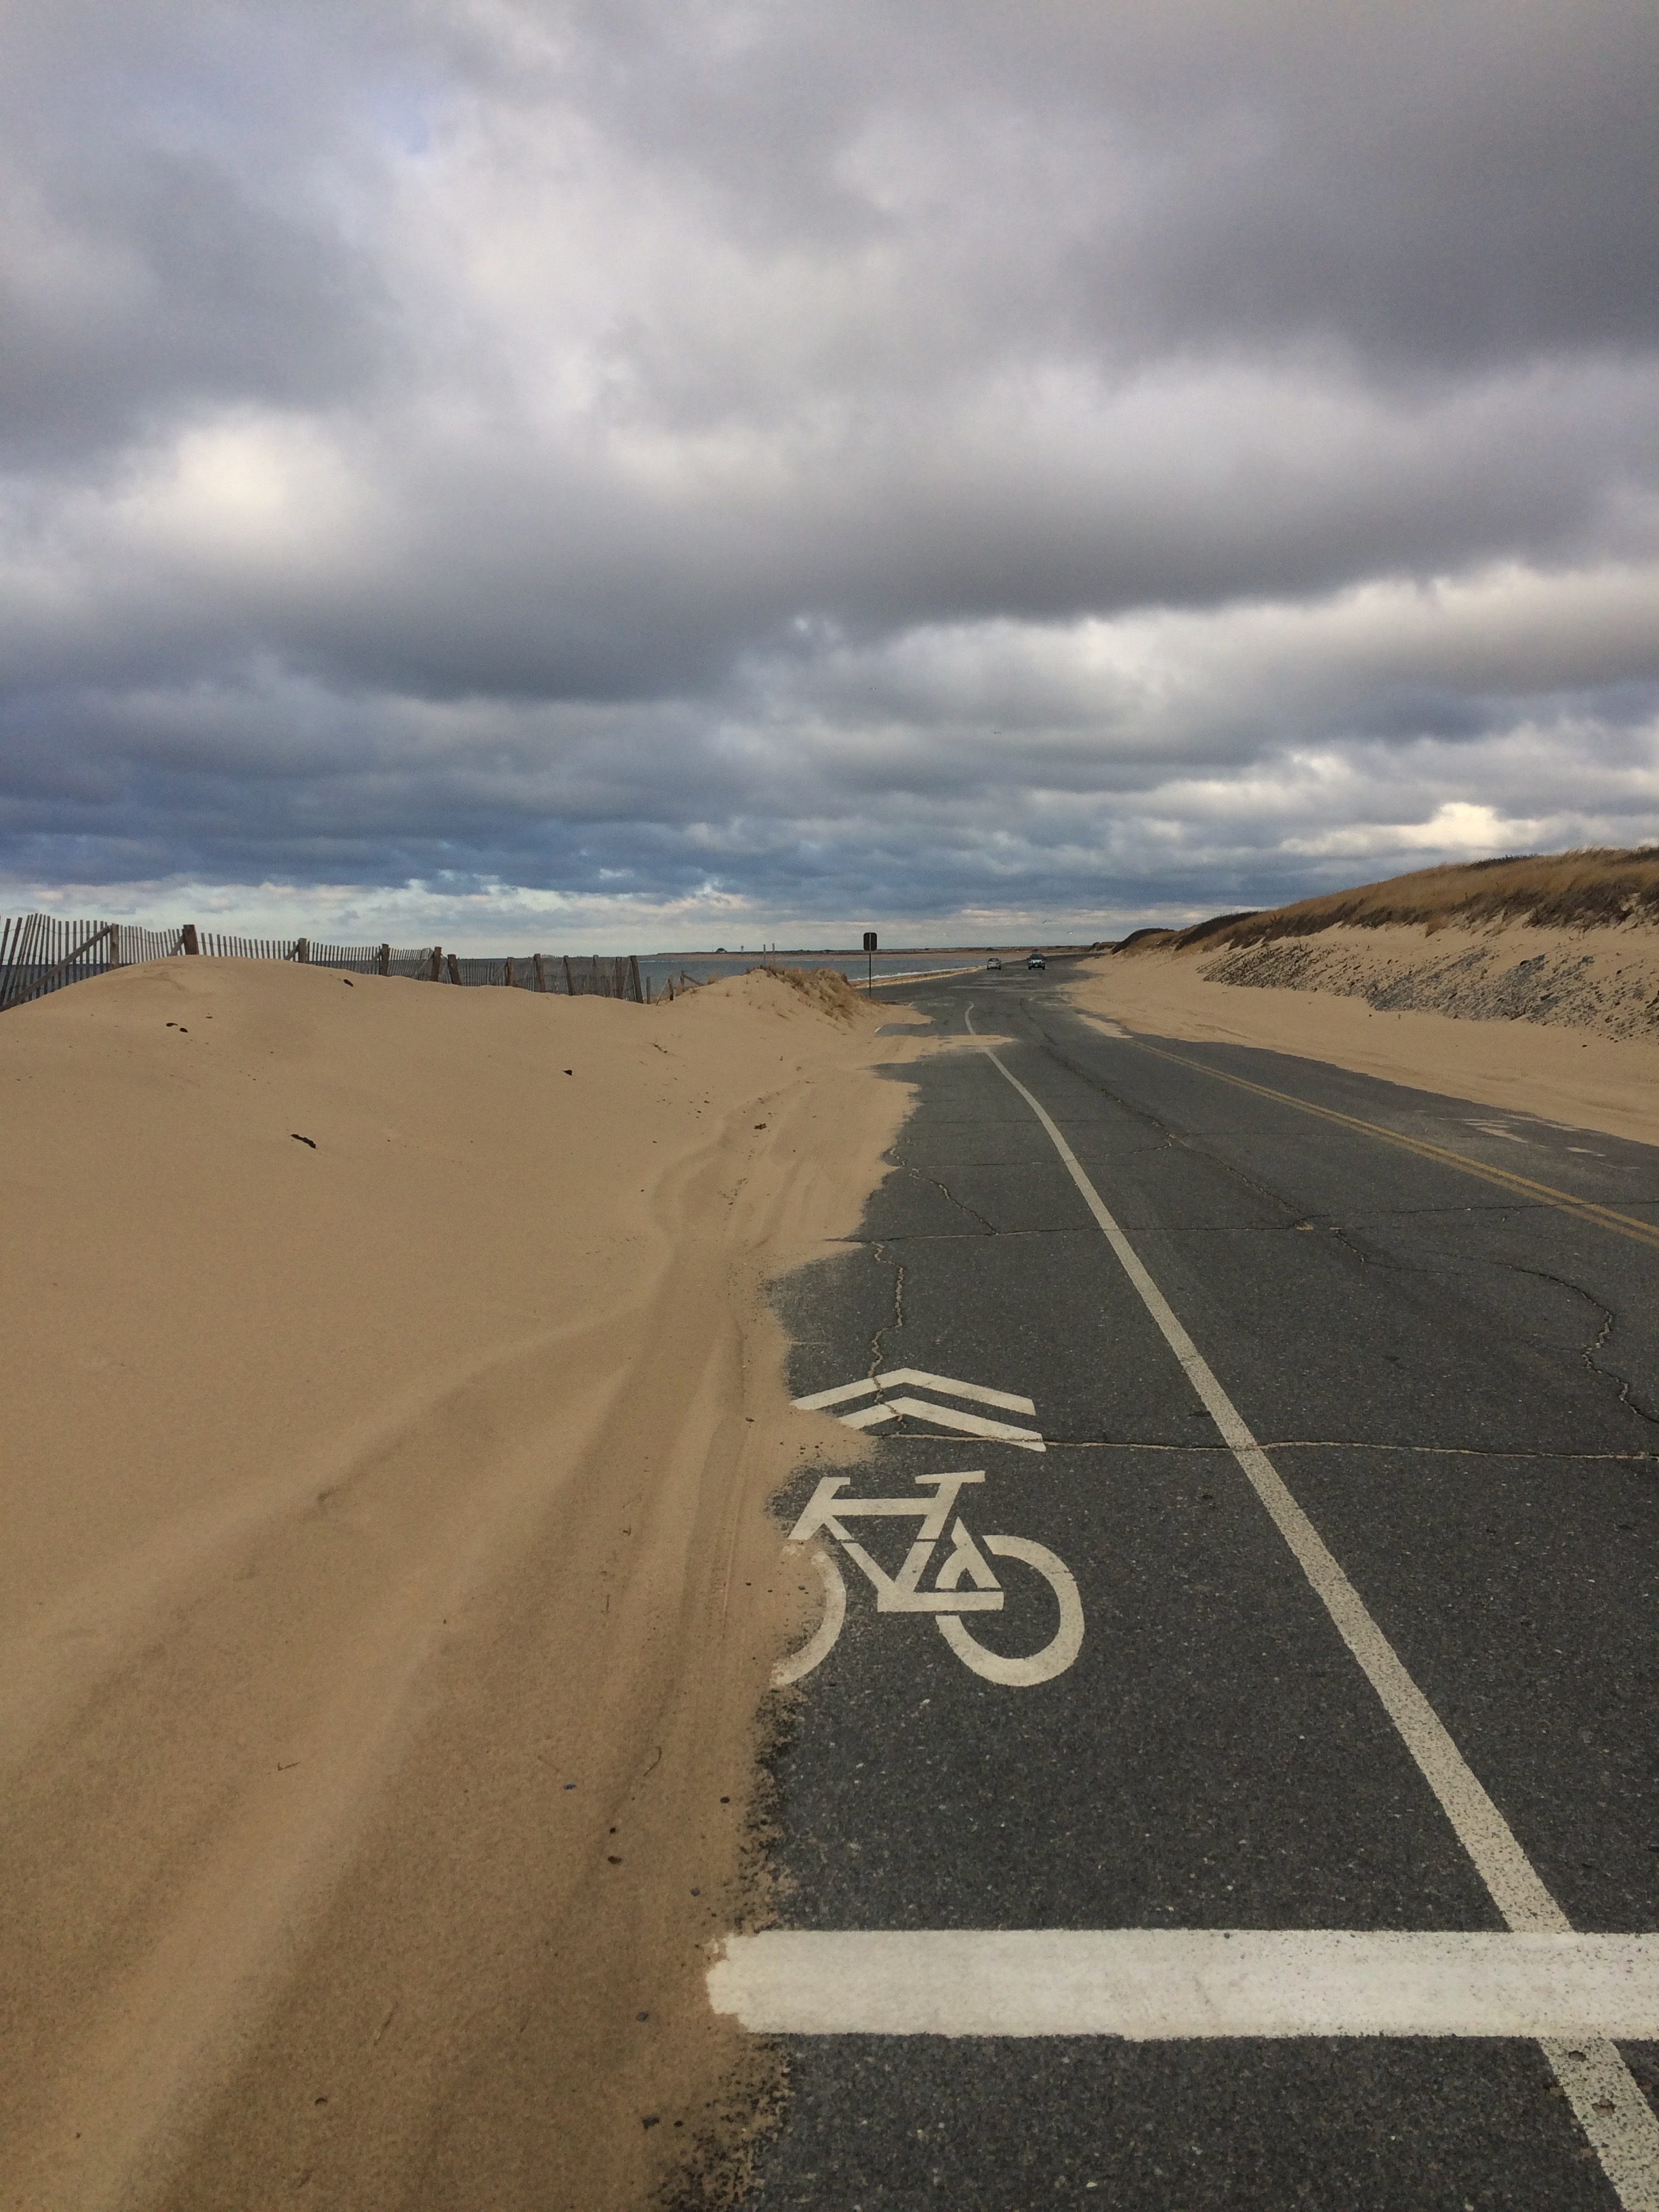 A sharrow covered in sand on the road at Herring Cove in the Cape Cod National Seashore, Provincetown